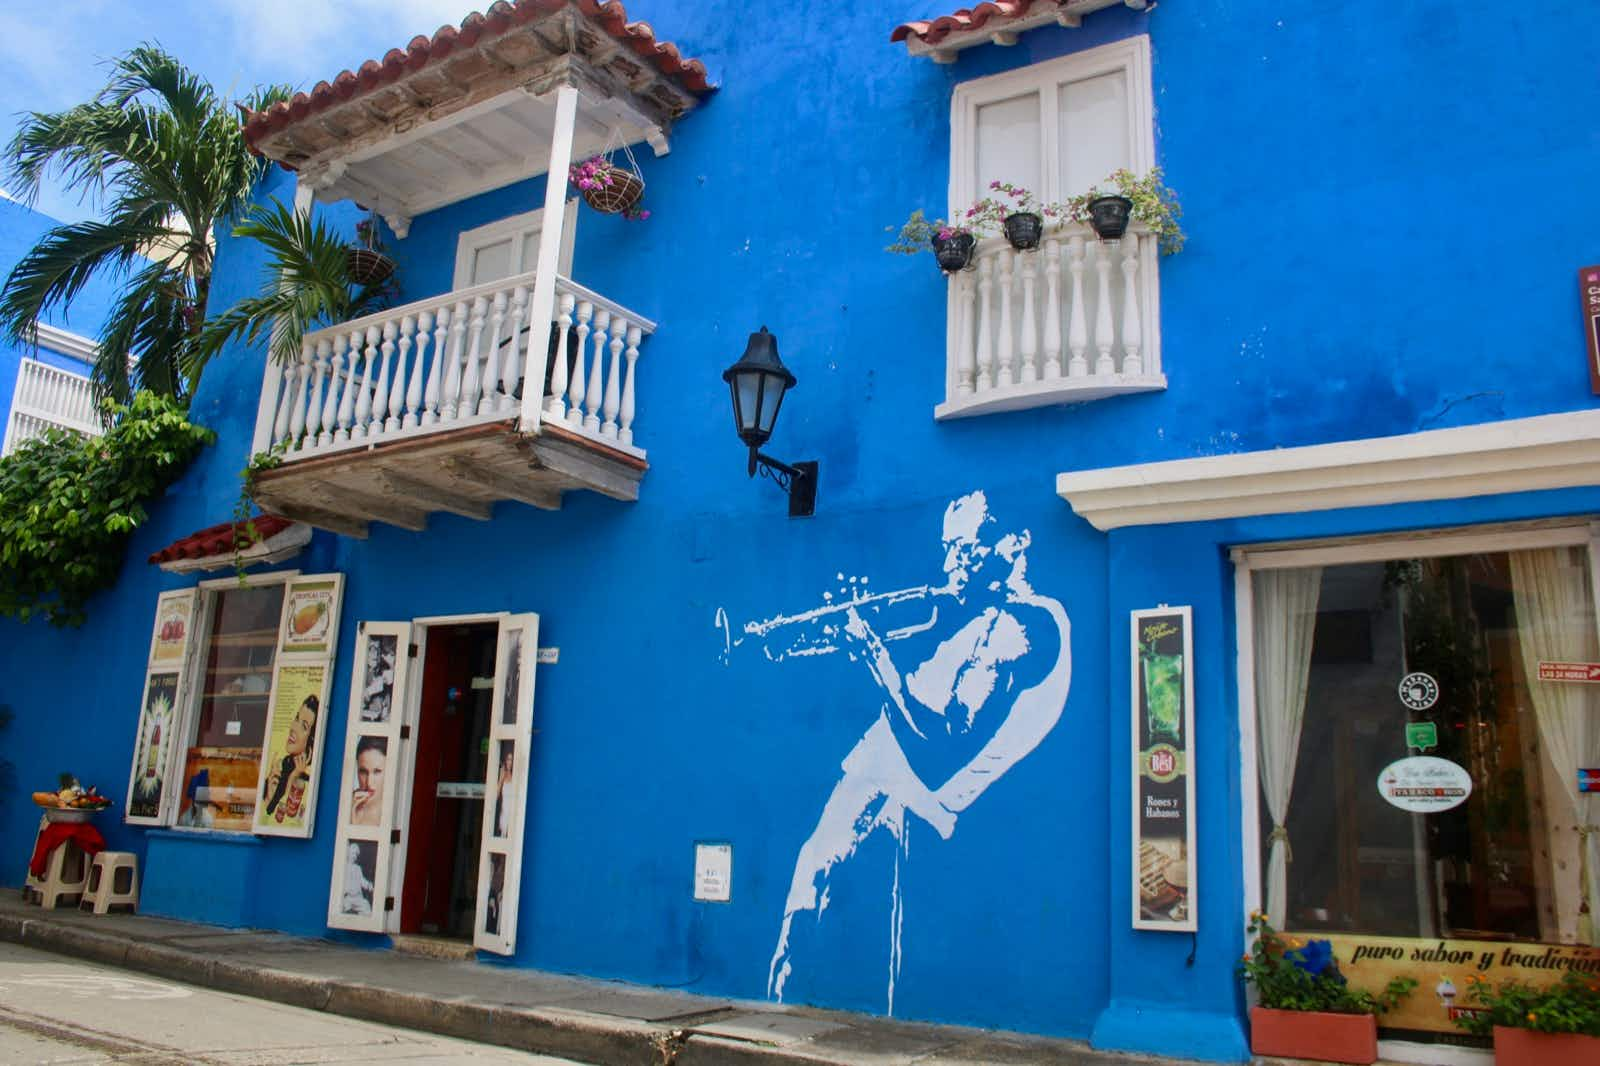 The colorful streets in Cartagena's Old Town © Jacqui de Klerk / Lonely Planet